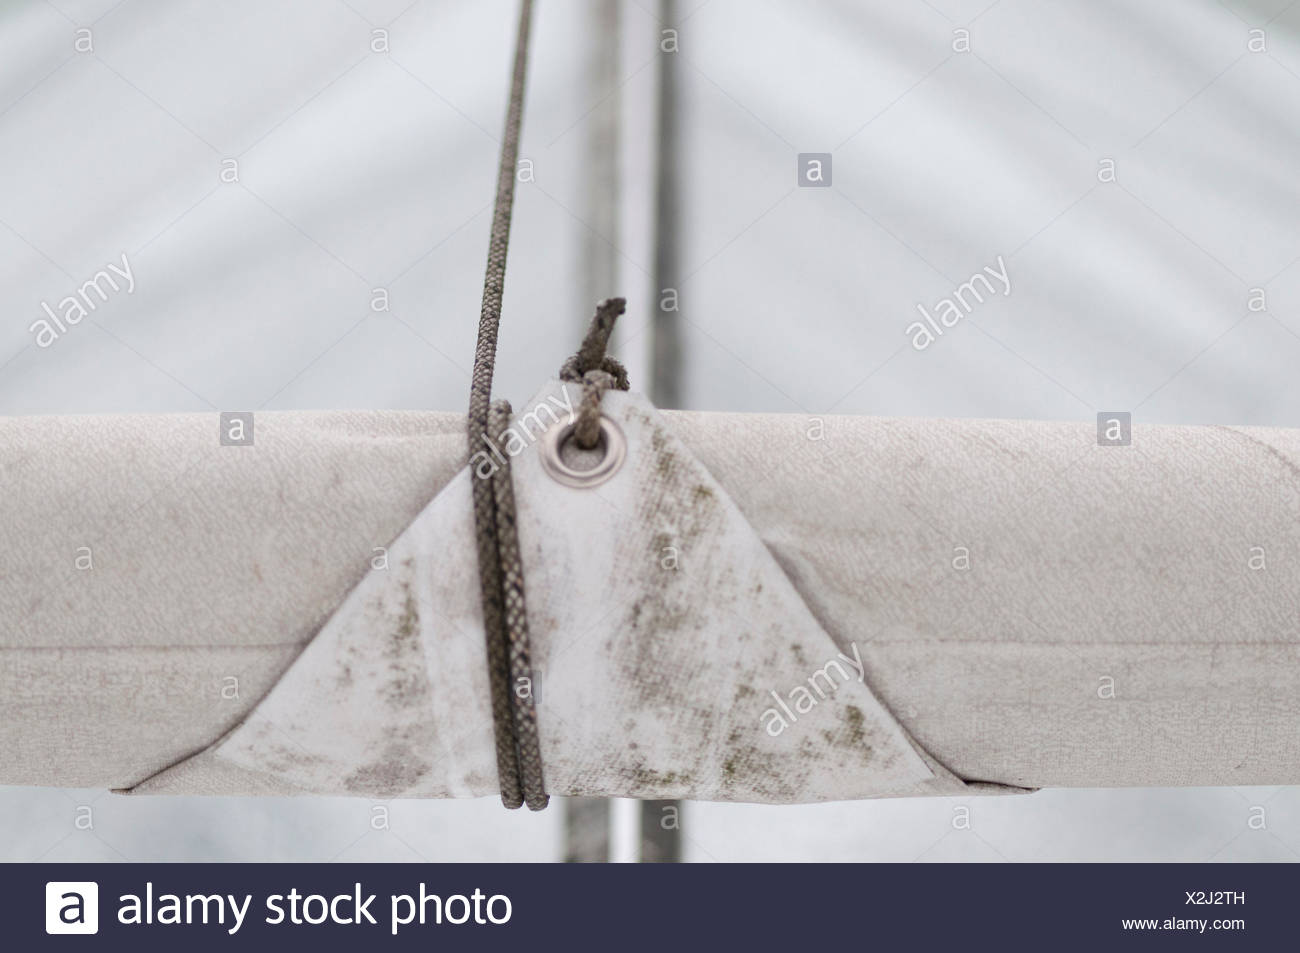 unrolled solar leech from sail cloth, detail - Stock Image